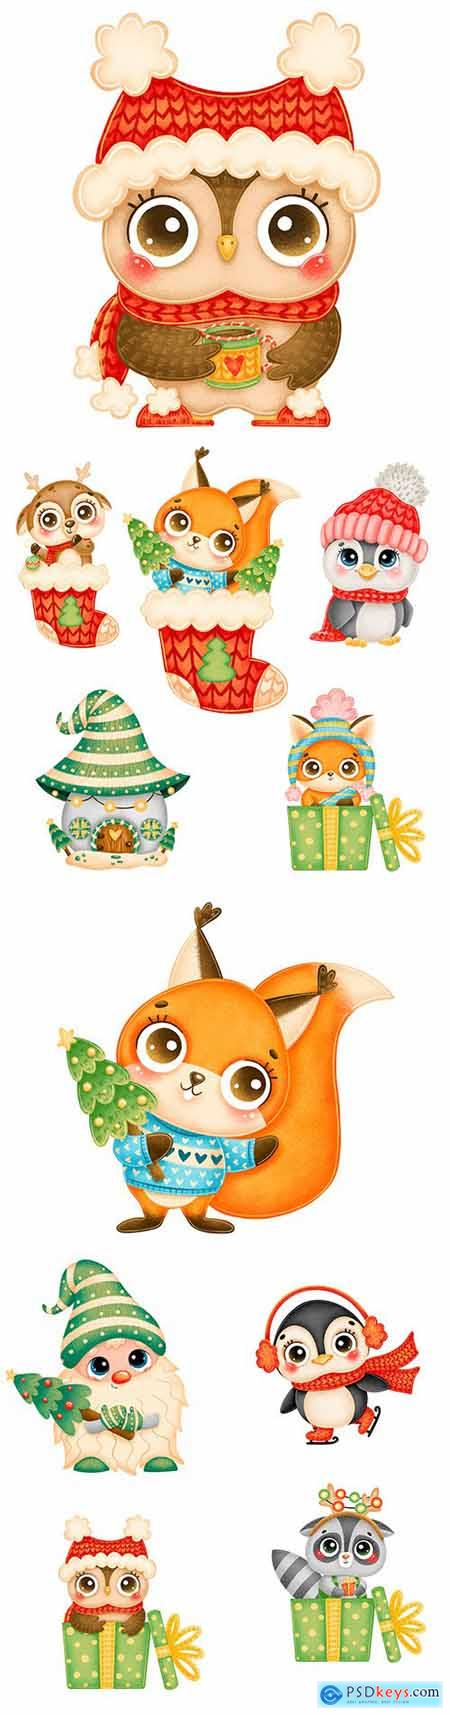 Cute cartoon animals in red hat and scarf Christmas illustrations